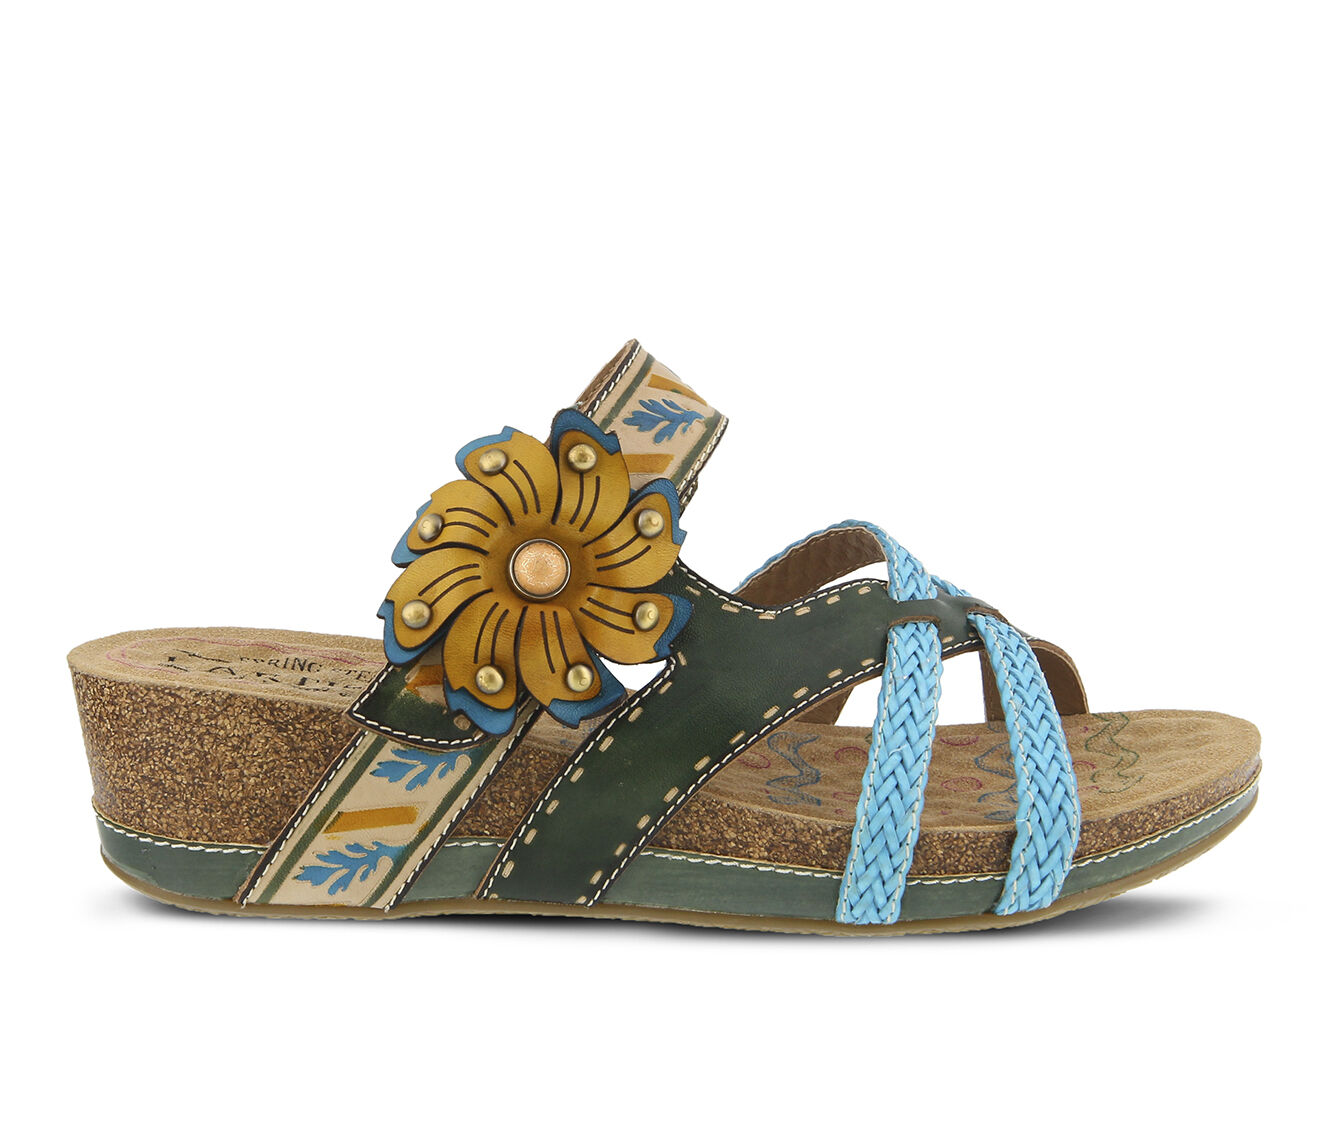 Top Quality Women's L'ARTISTE Deonna Sandals Green Multi